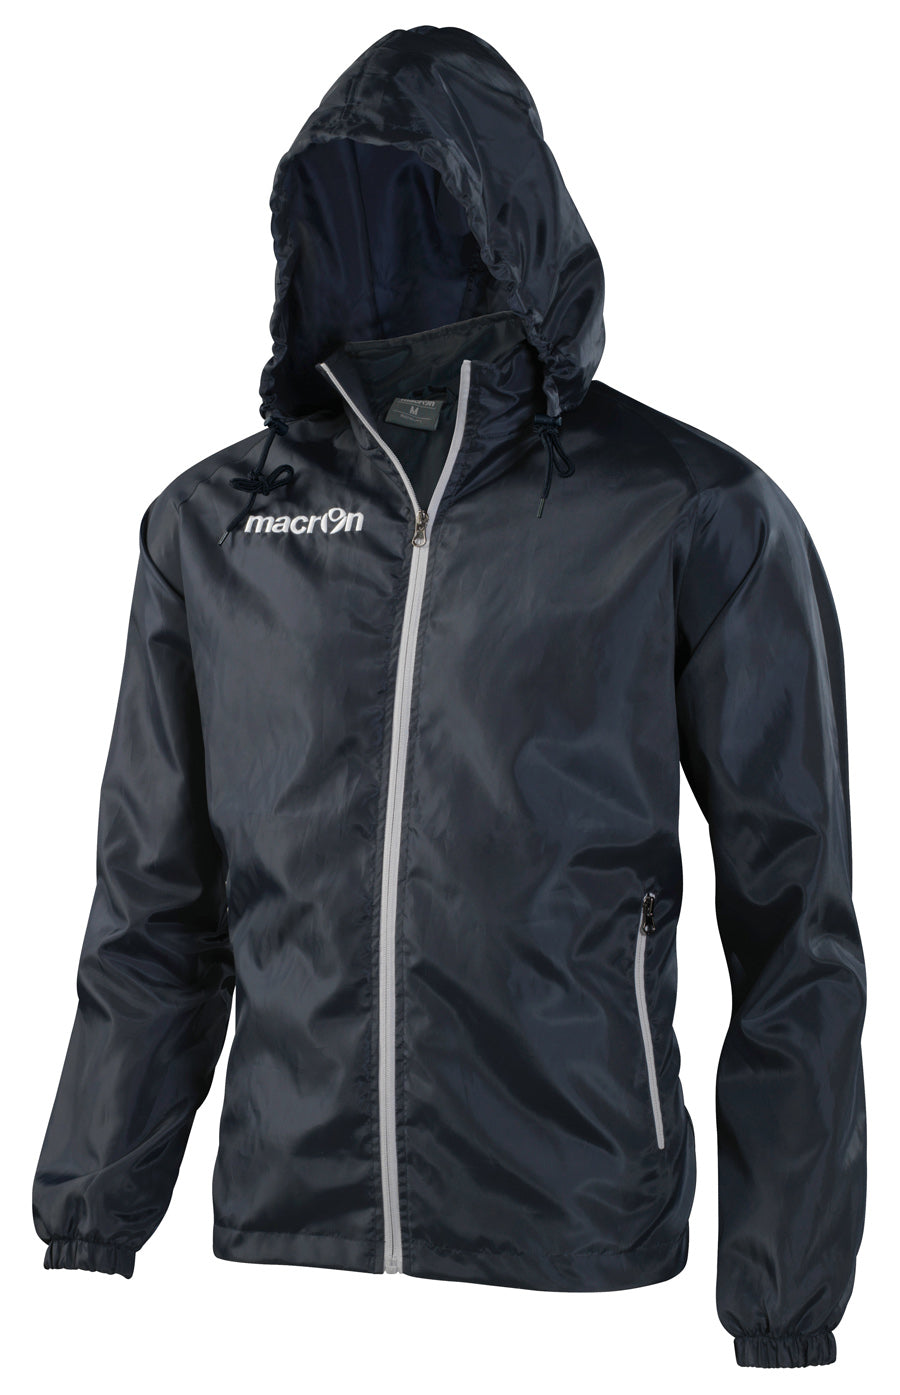 Macron Praia Windbreaker - Final Sale - ITA Sports Shop